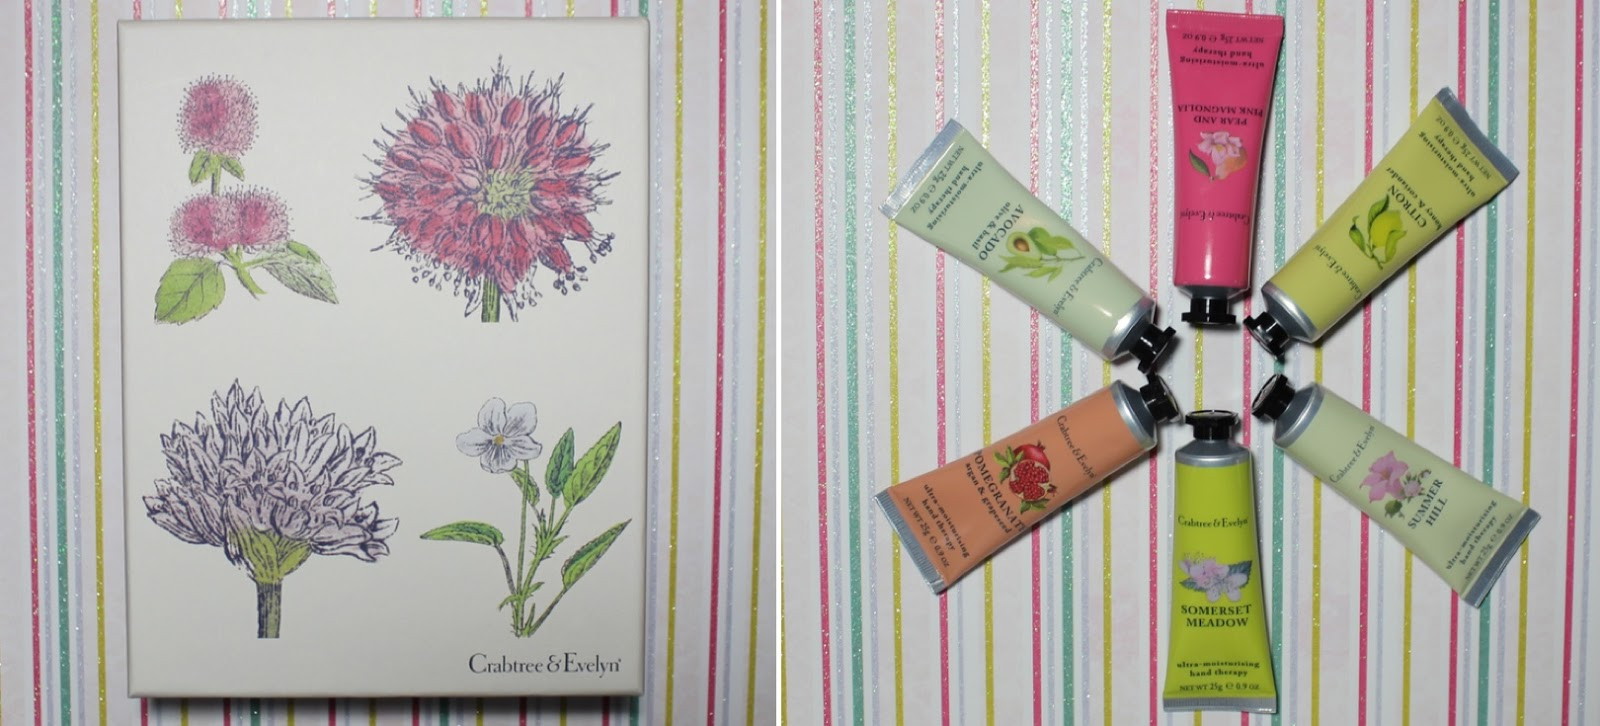 crabtree and evelyn gift set 2015